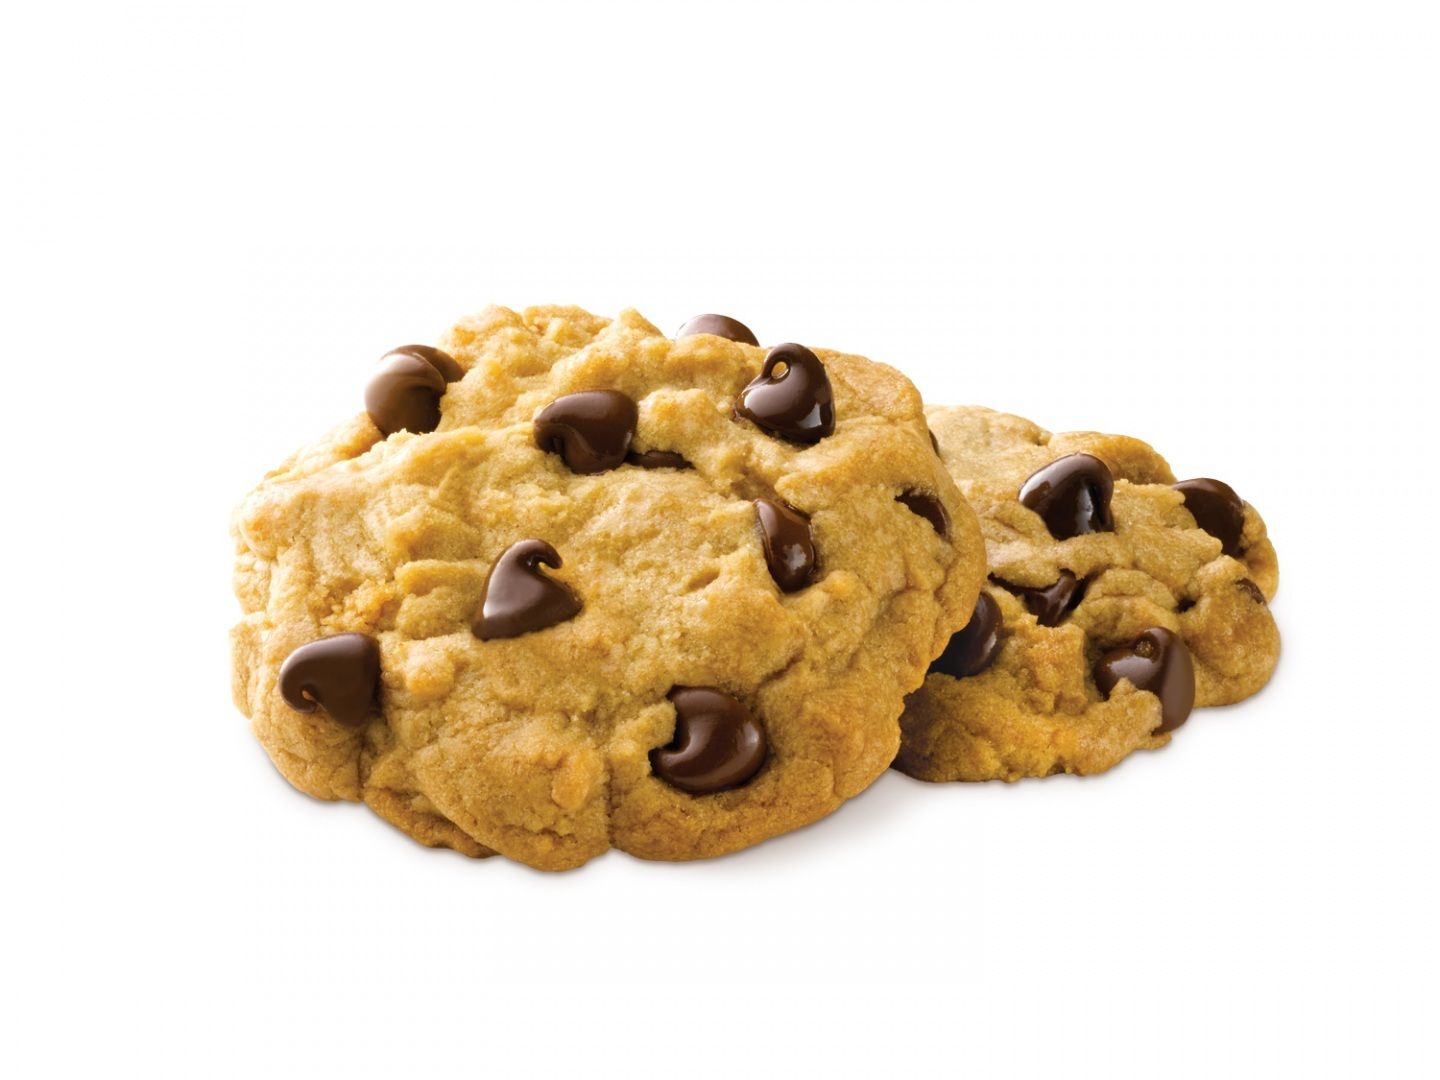 Free Plate Of Cookies Png, Download Free Clip Art, Free Clip.